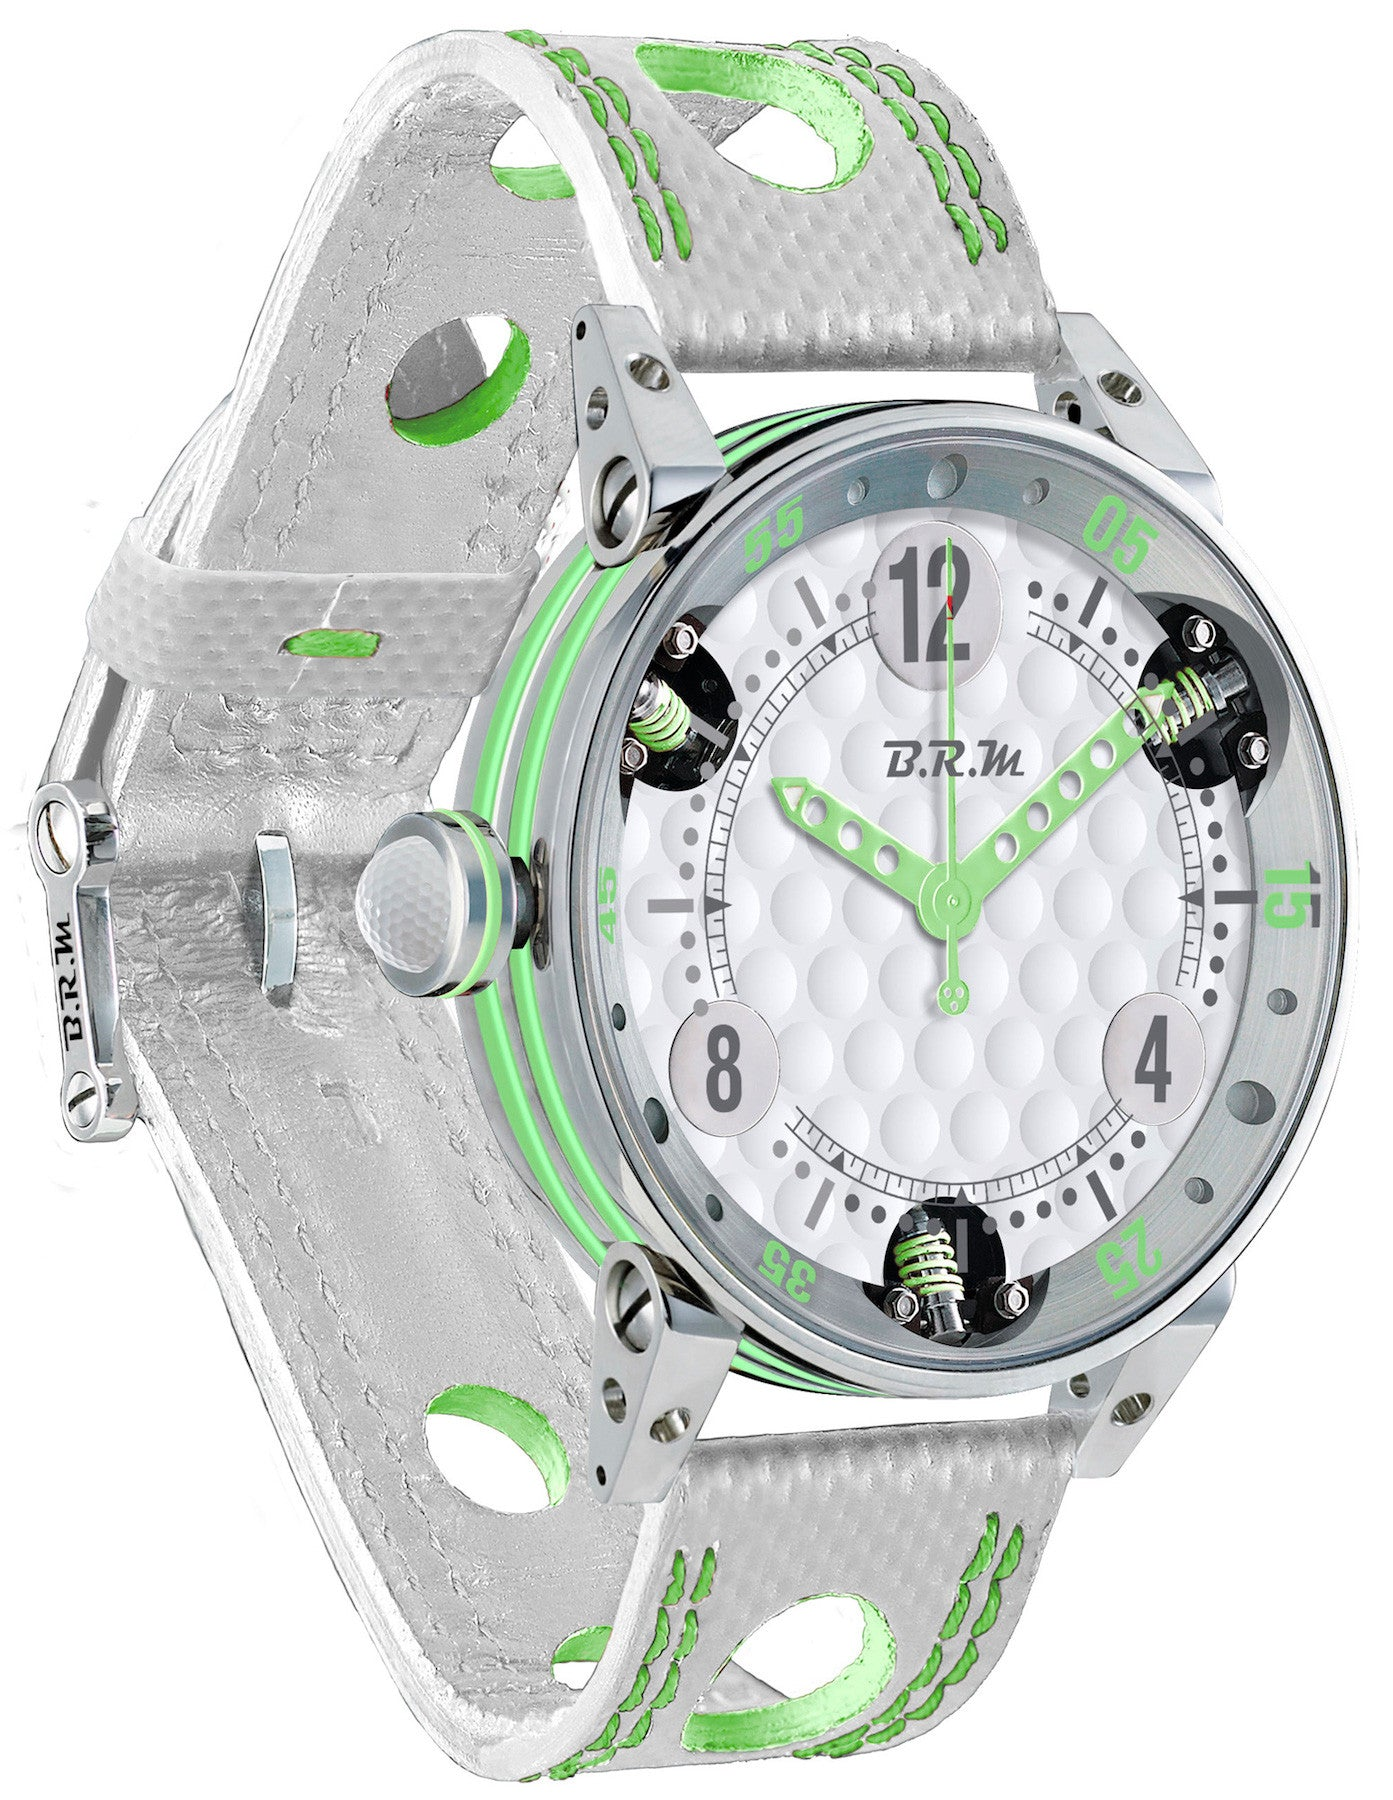 B.R.M Watch Golf Master Light Green Hands Ladies